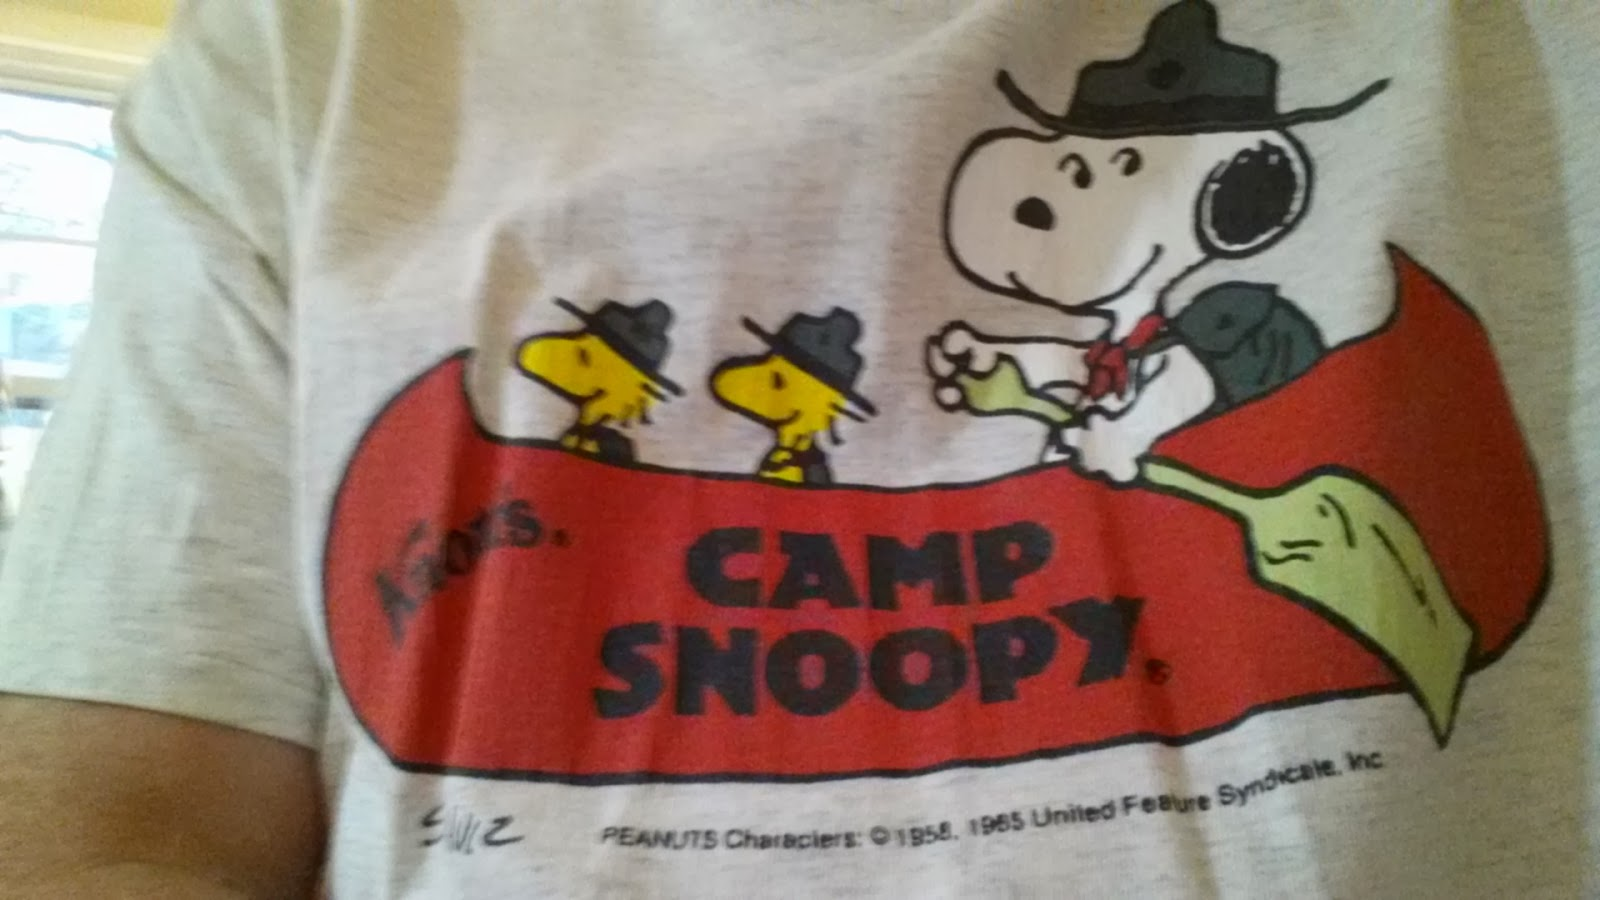 84d3ab57f7 365 T-Shirts  a sense of doubt blog  T-shirt  244 - Camp Snoopy